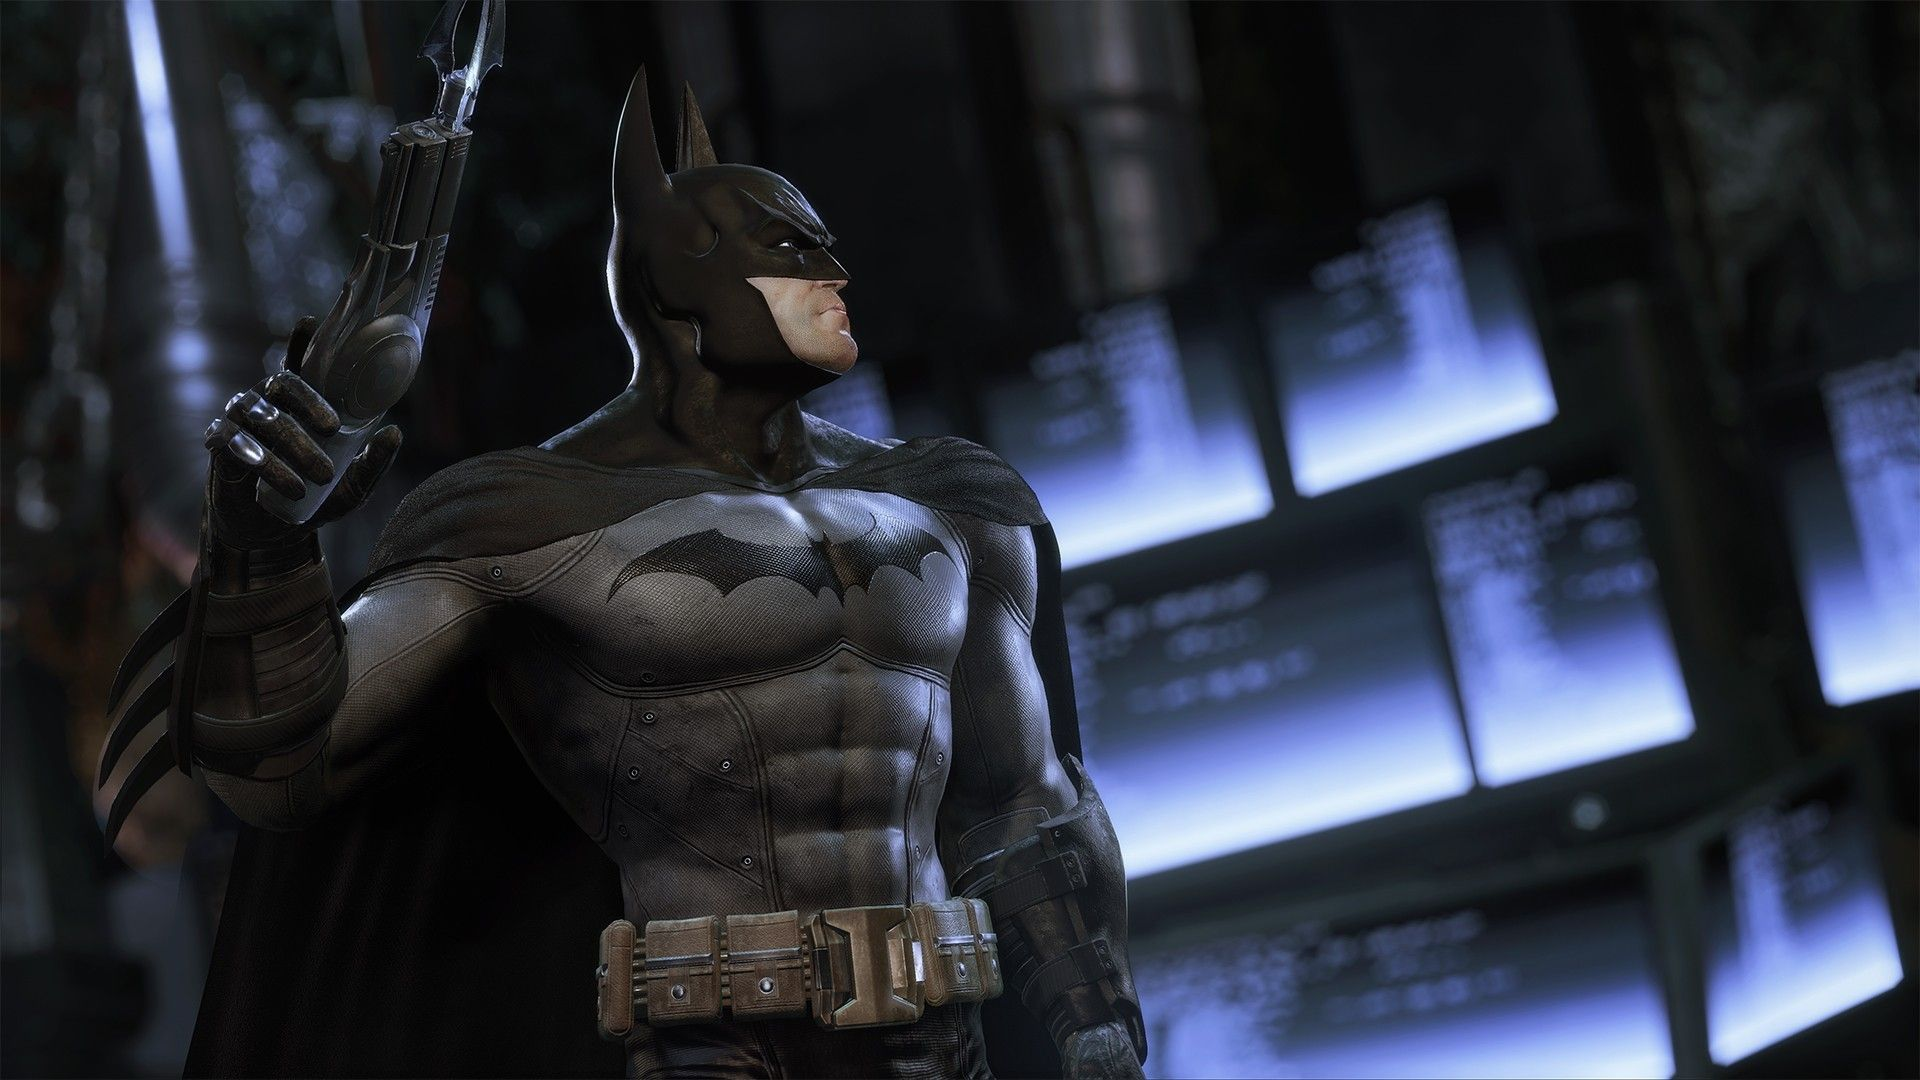 http://cdn.collider.com/wp-content/uploads/2016/09/batman-return-to-arkham-image.jpg